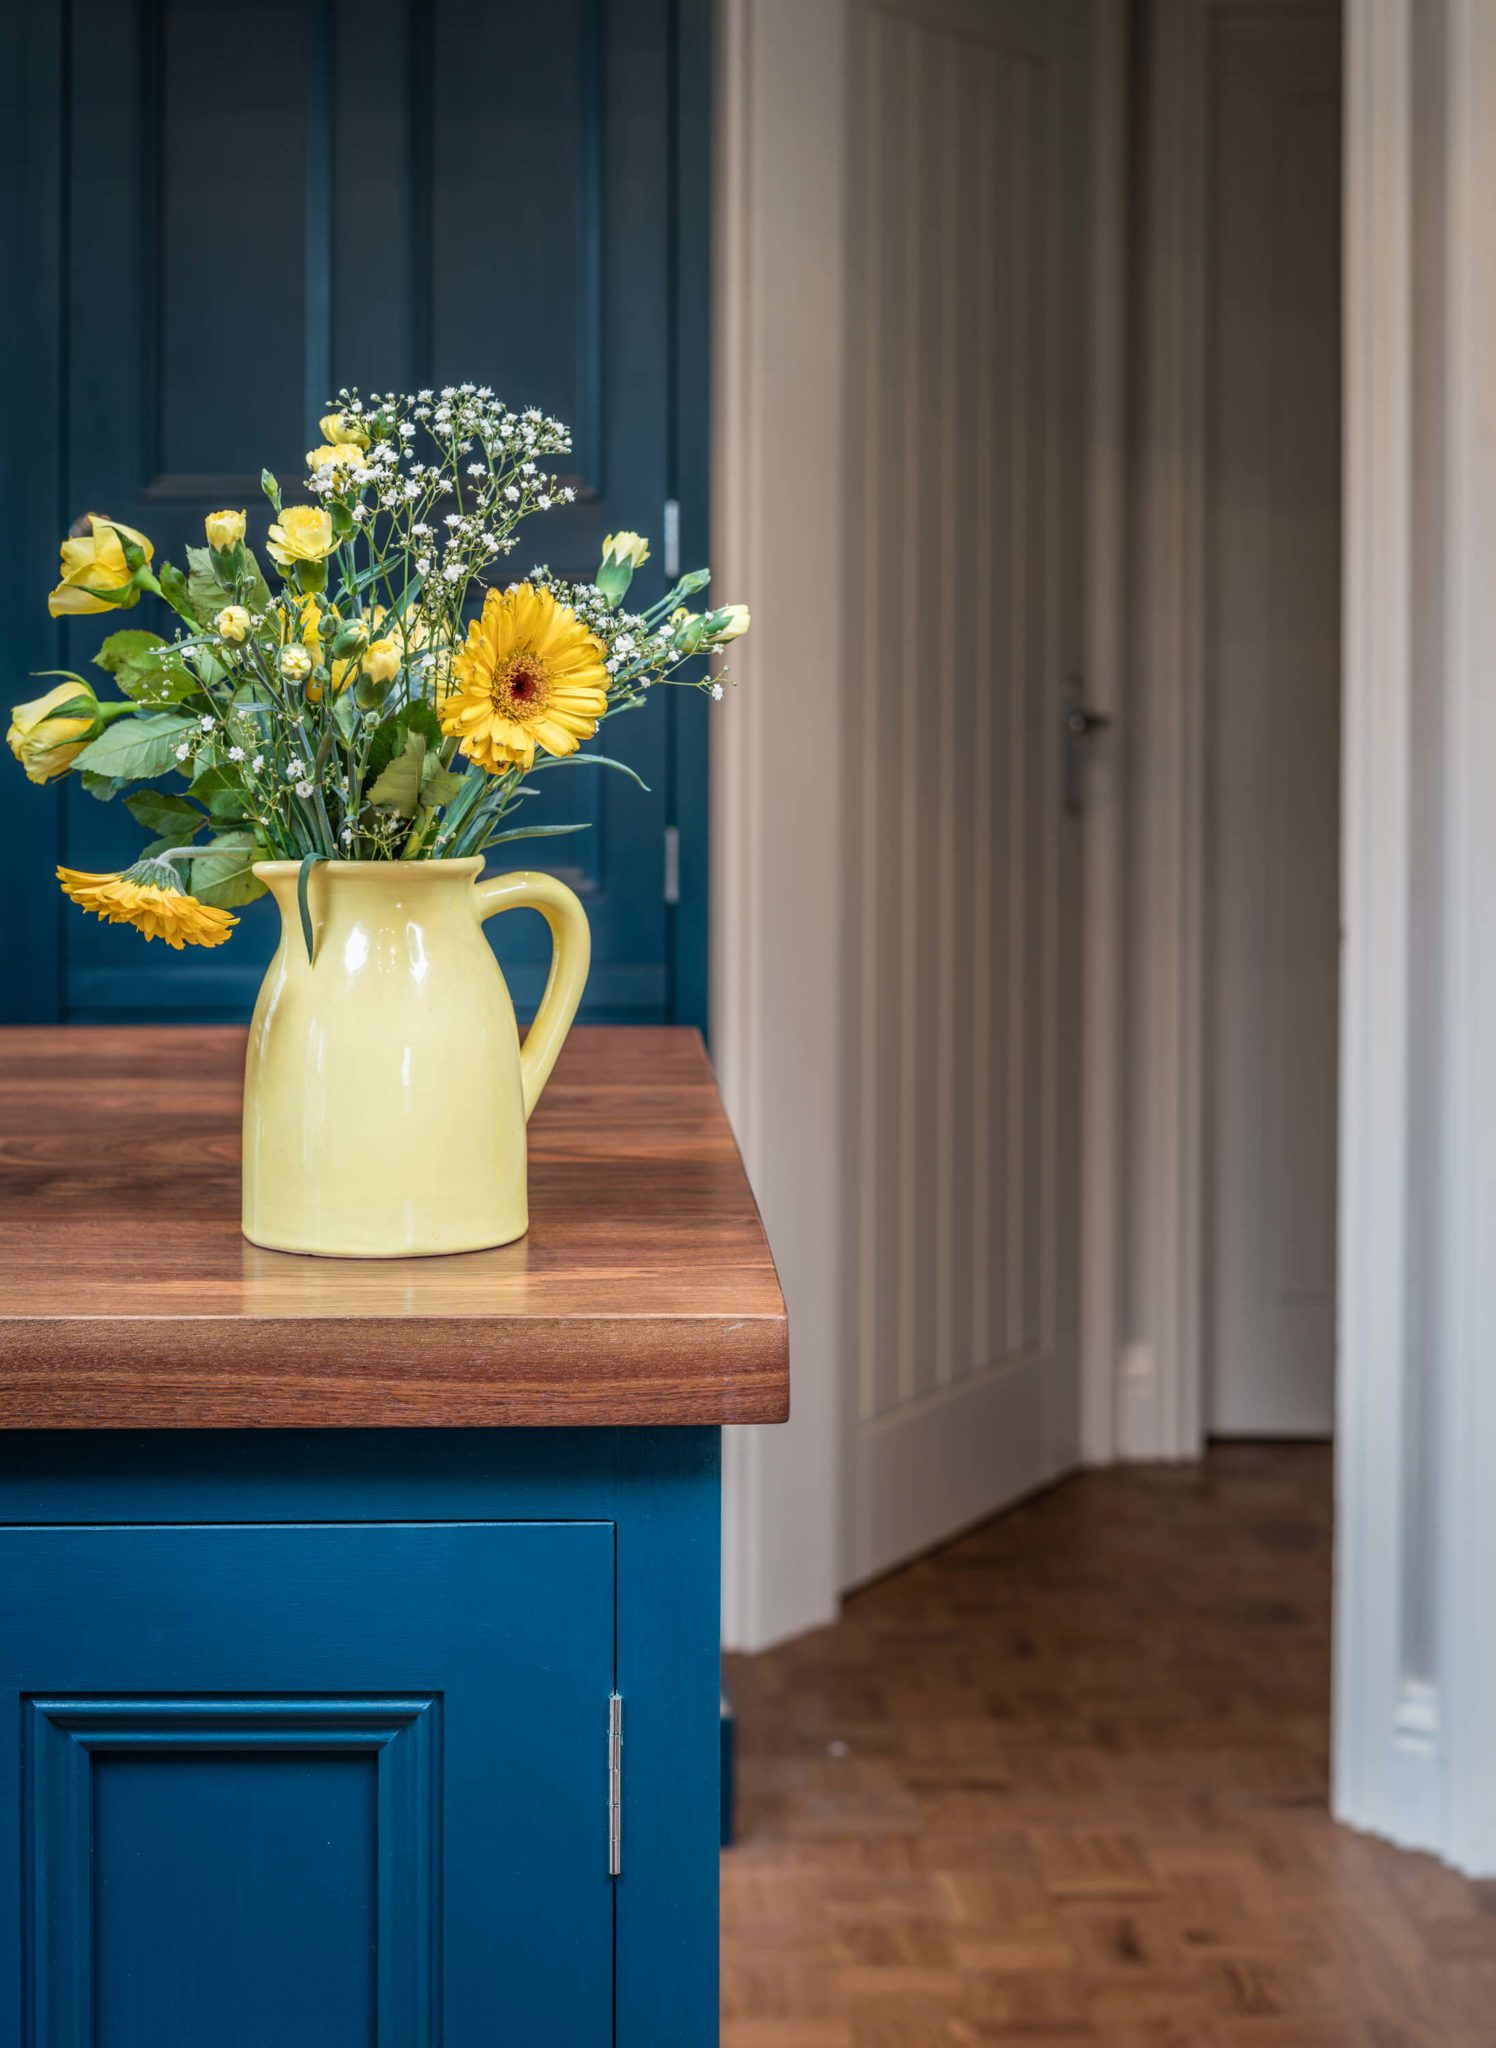 Flower Vase - Hill Farm Furniture